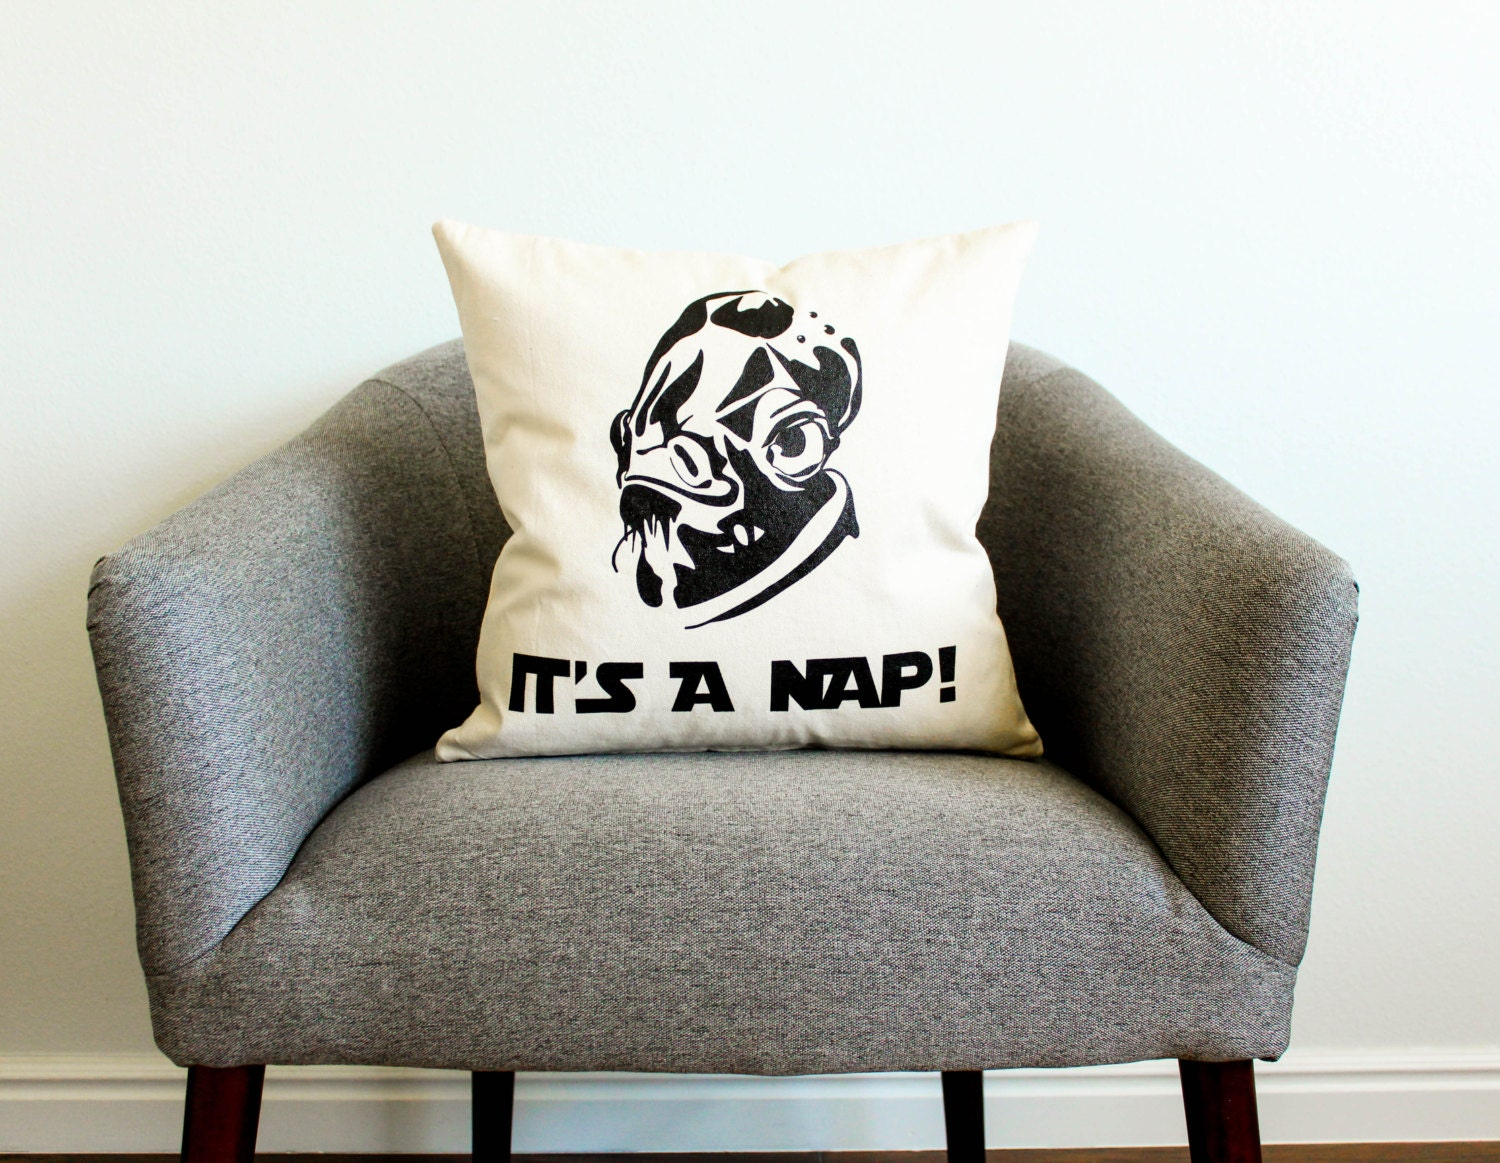 Star Wars It S A Nap Pillow Gift For Her # Muebles Himher S A